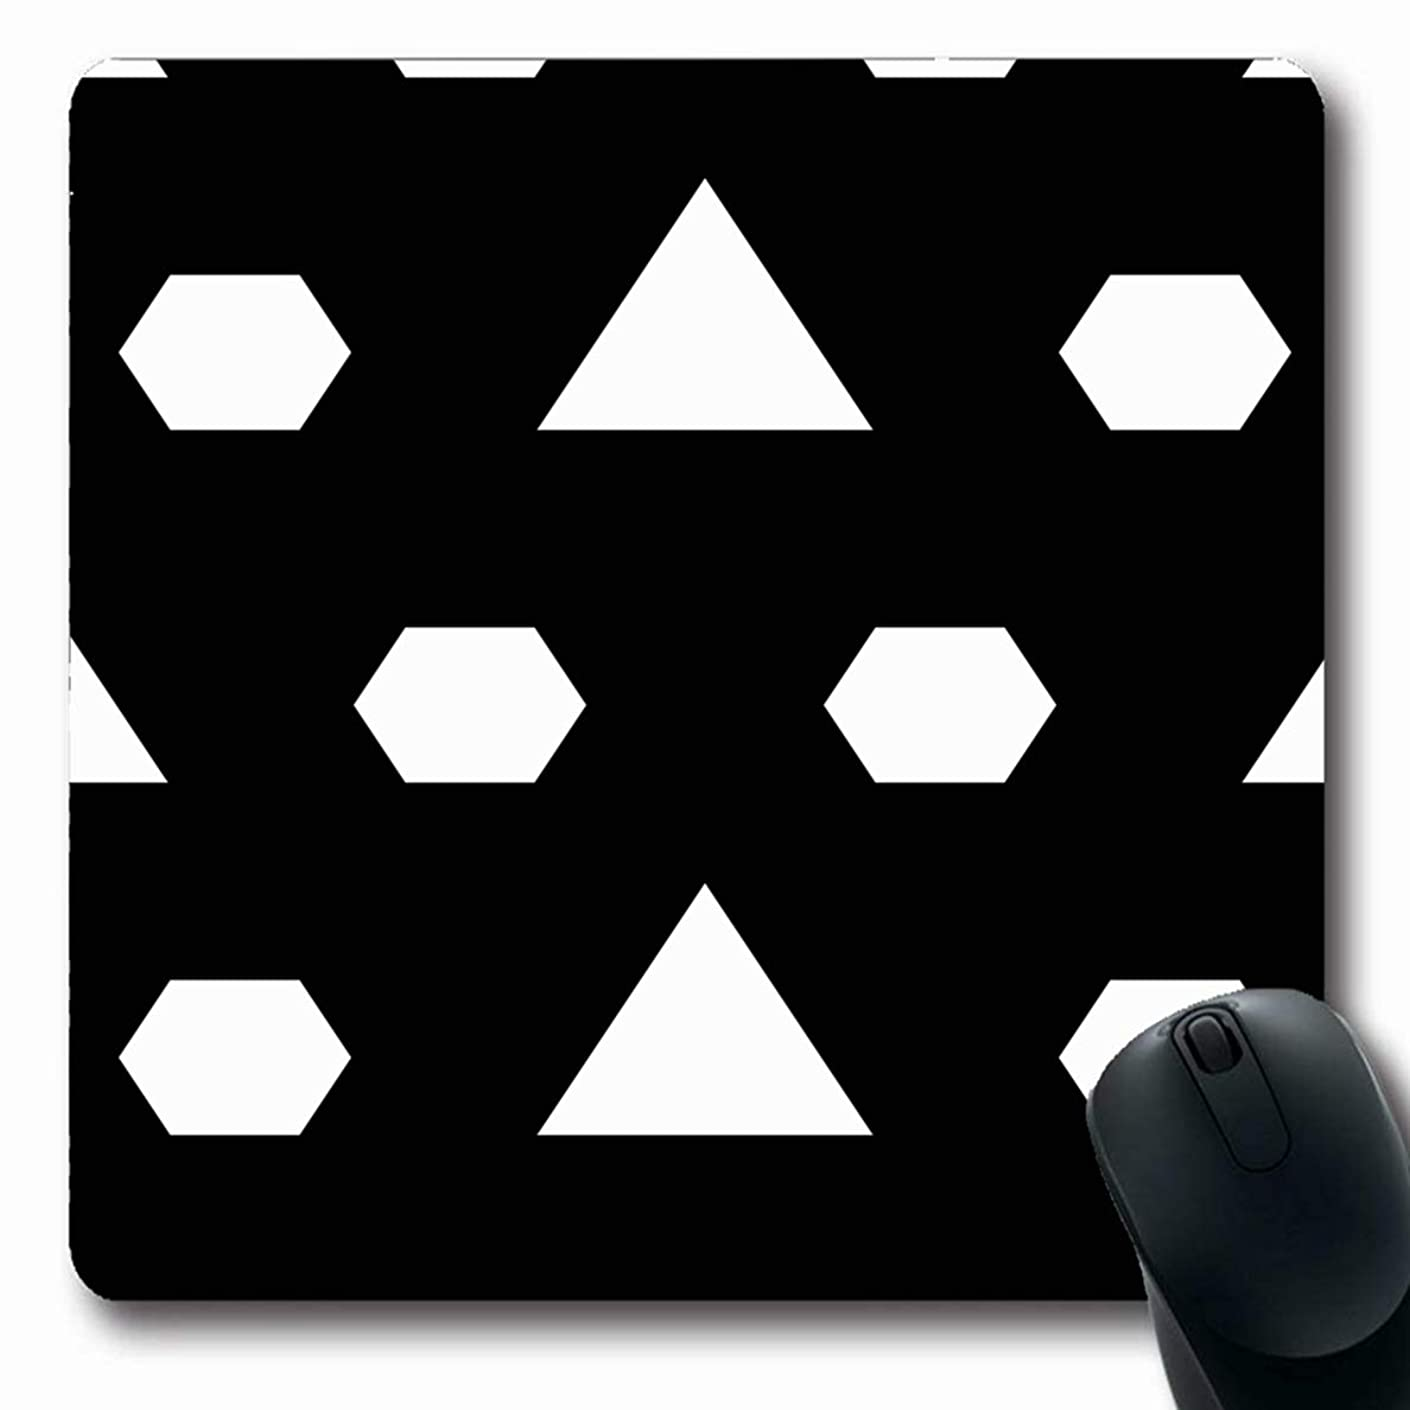 Ahawoso Mousepads for Computers Carpet Architectural Mosaic Triangles Hexagons Grid Arabesque Comb Asian Blend Bound Canvas Design Oblong Shape 7.9 x 9.5 Inches Non-Slip Oblong Gaming Mouse Pad